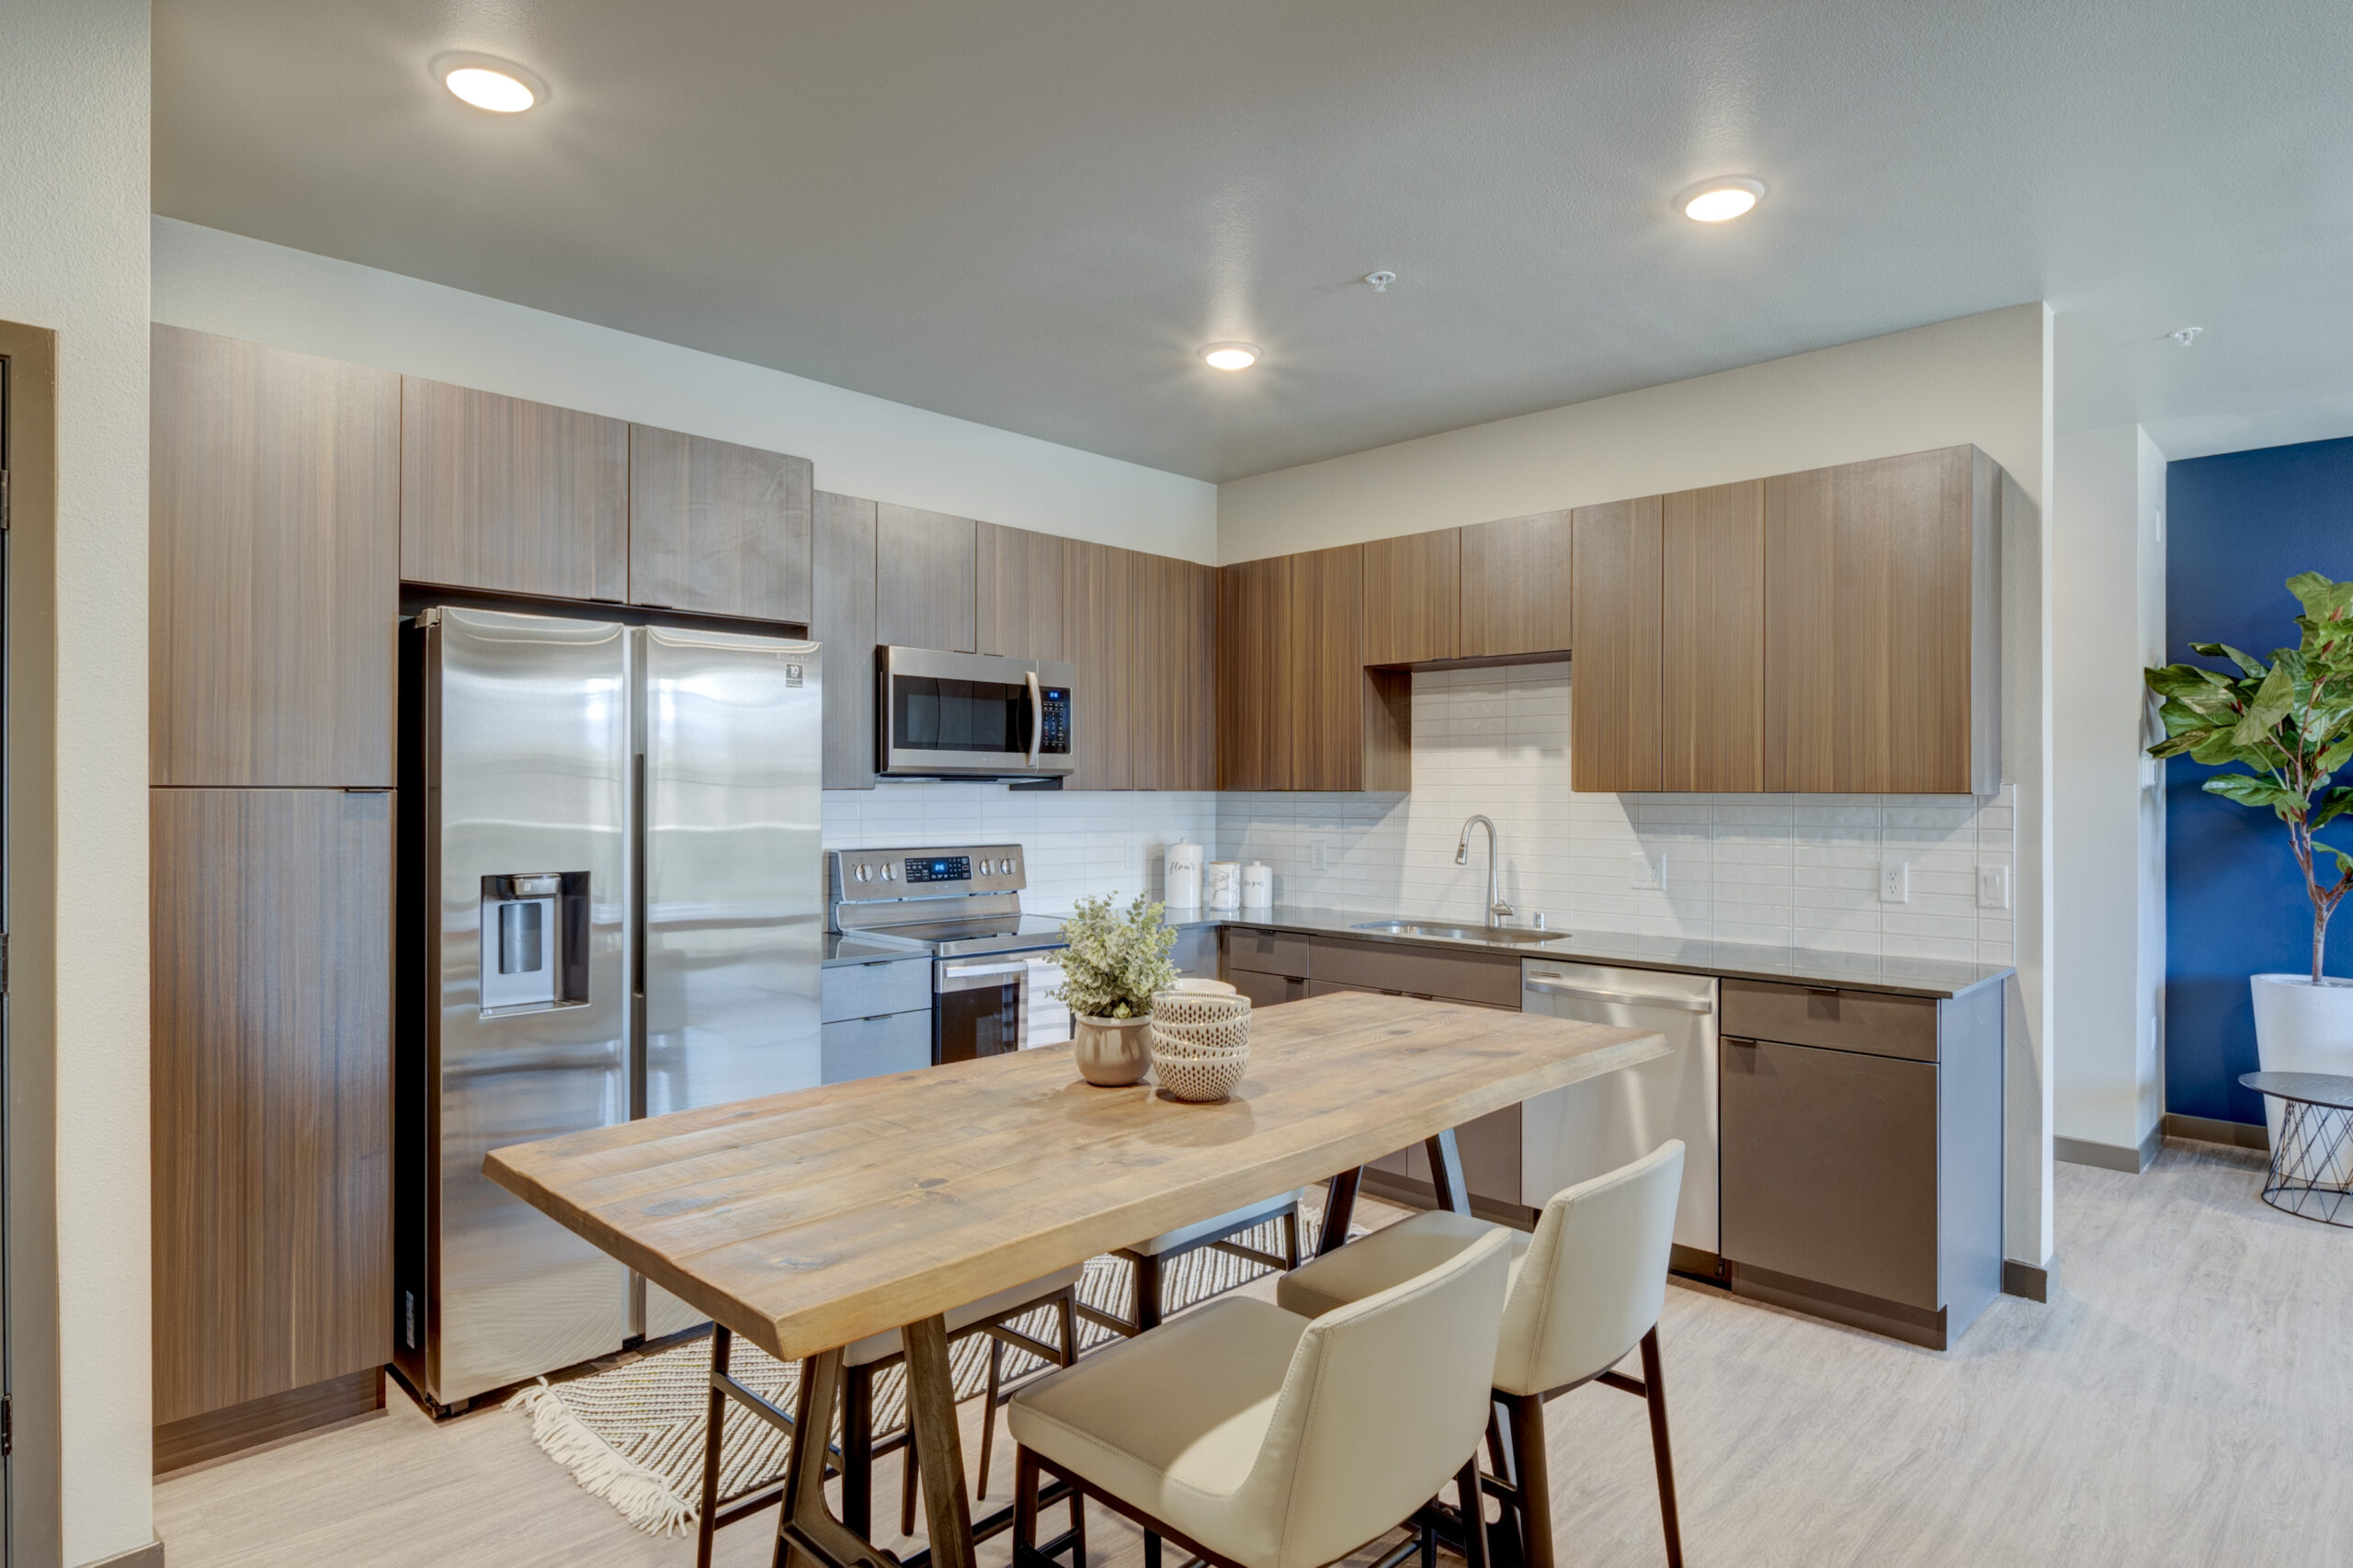 Kitchen with wood floor and cabinets, stainless steel appliances and tall live edge wood dining table with stools.